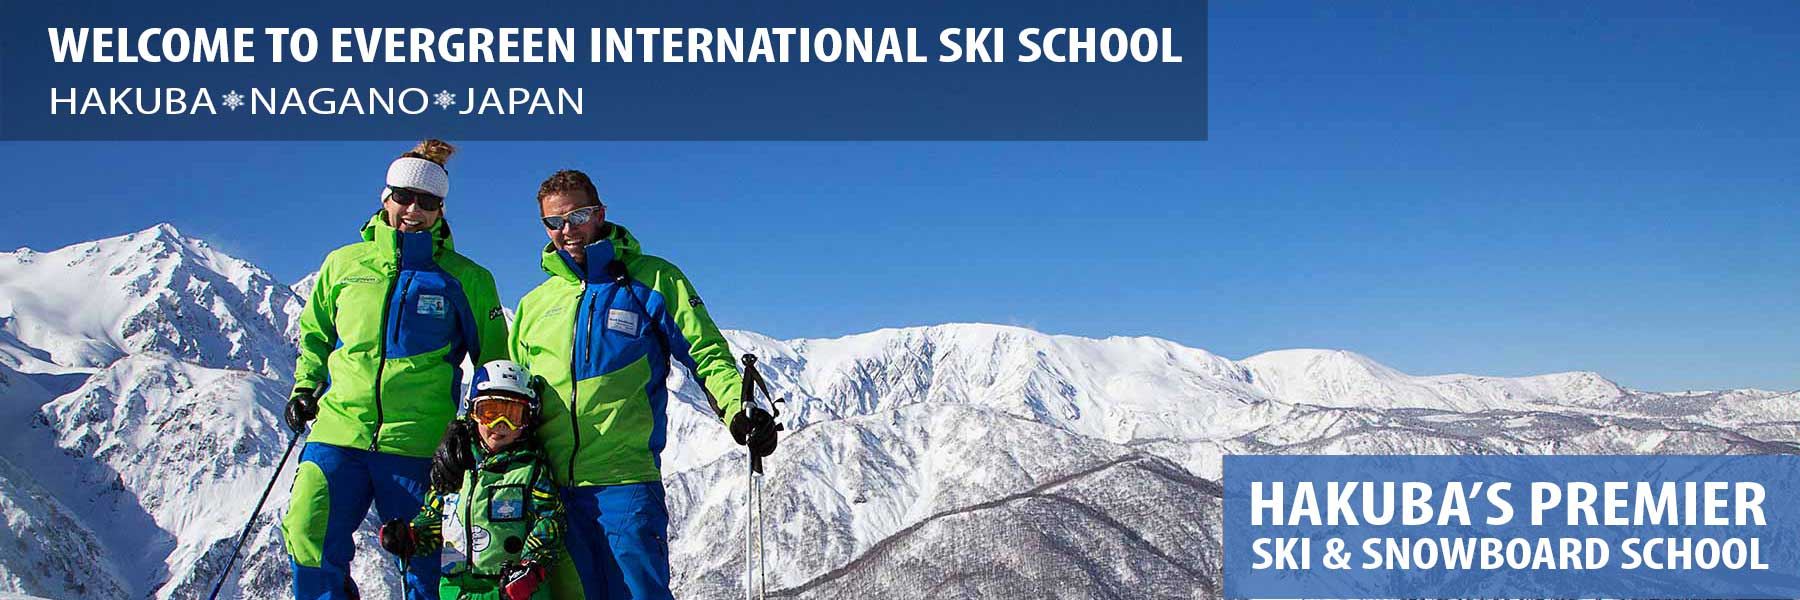 japan ski school header - private lessons